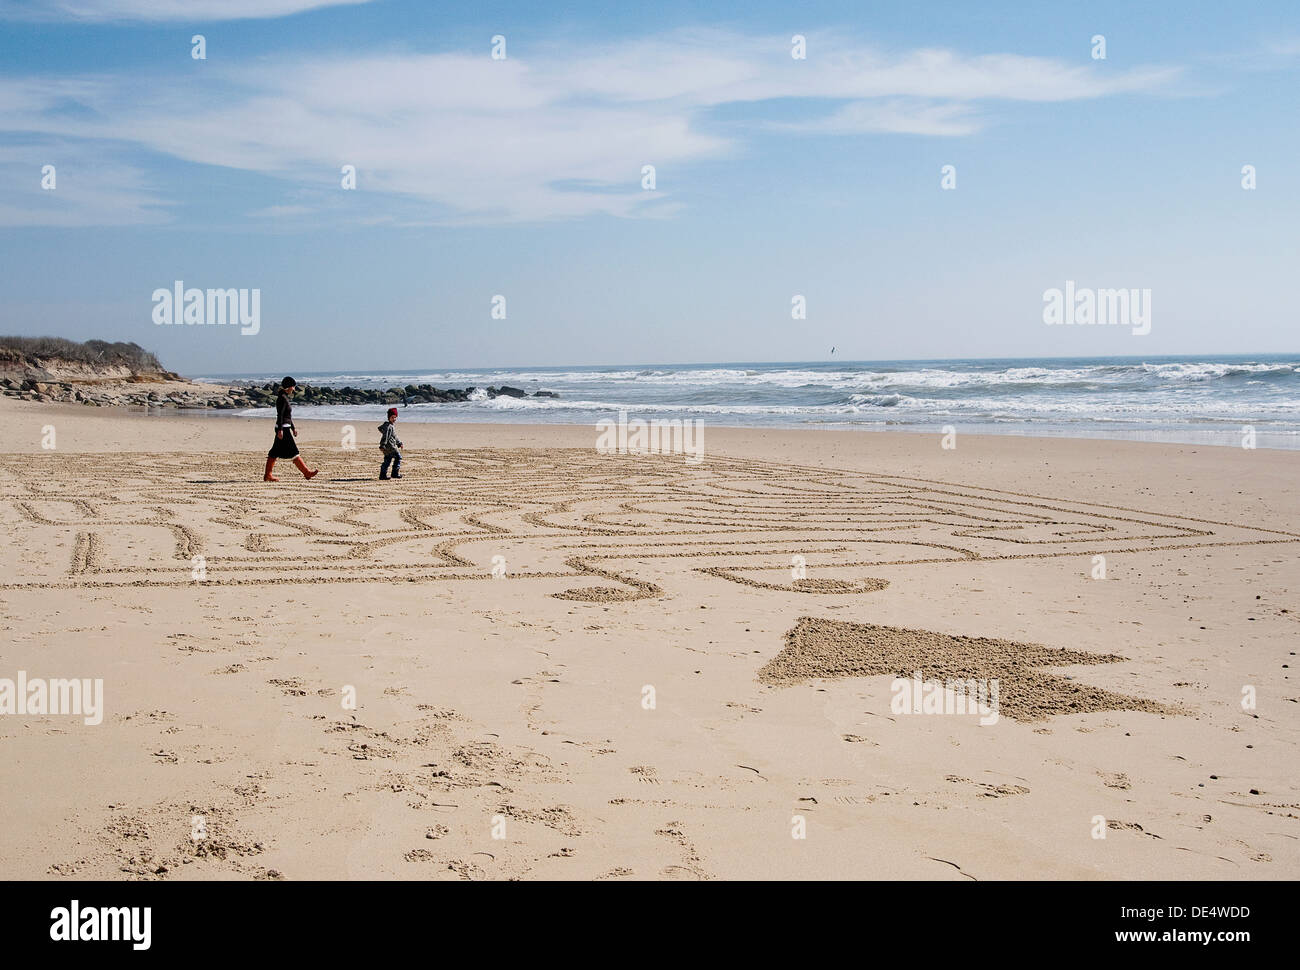 people walking in beach maze on Ditch Plains beach, Montauk, NY. - Stock Image